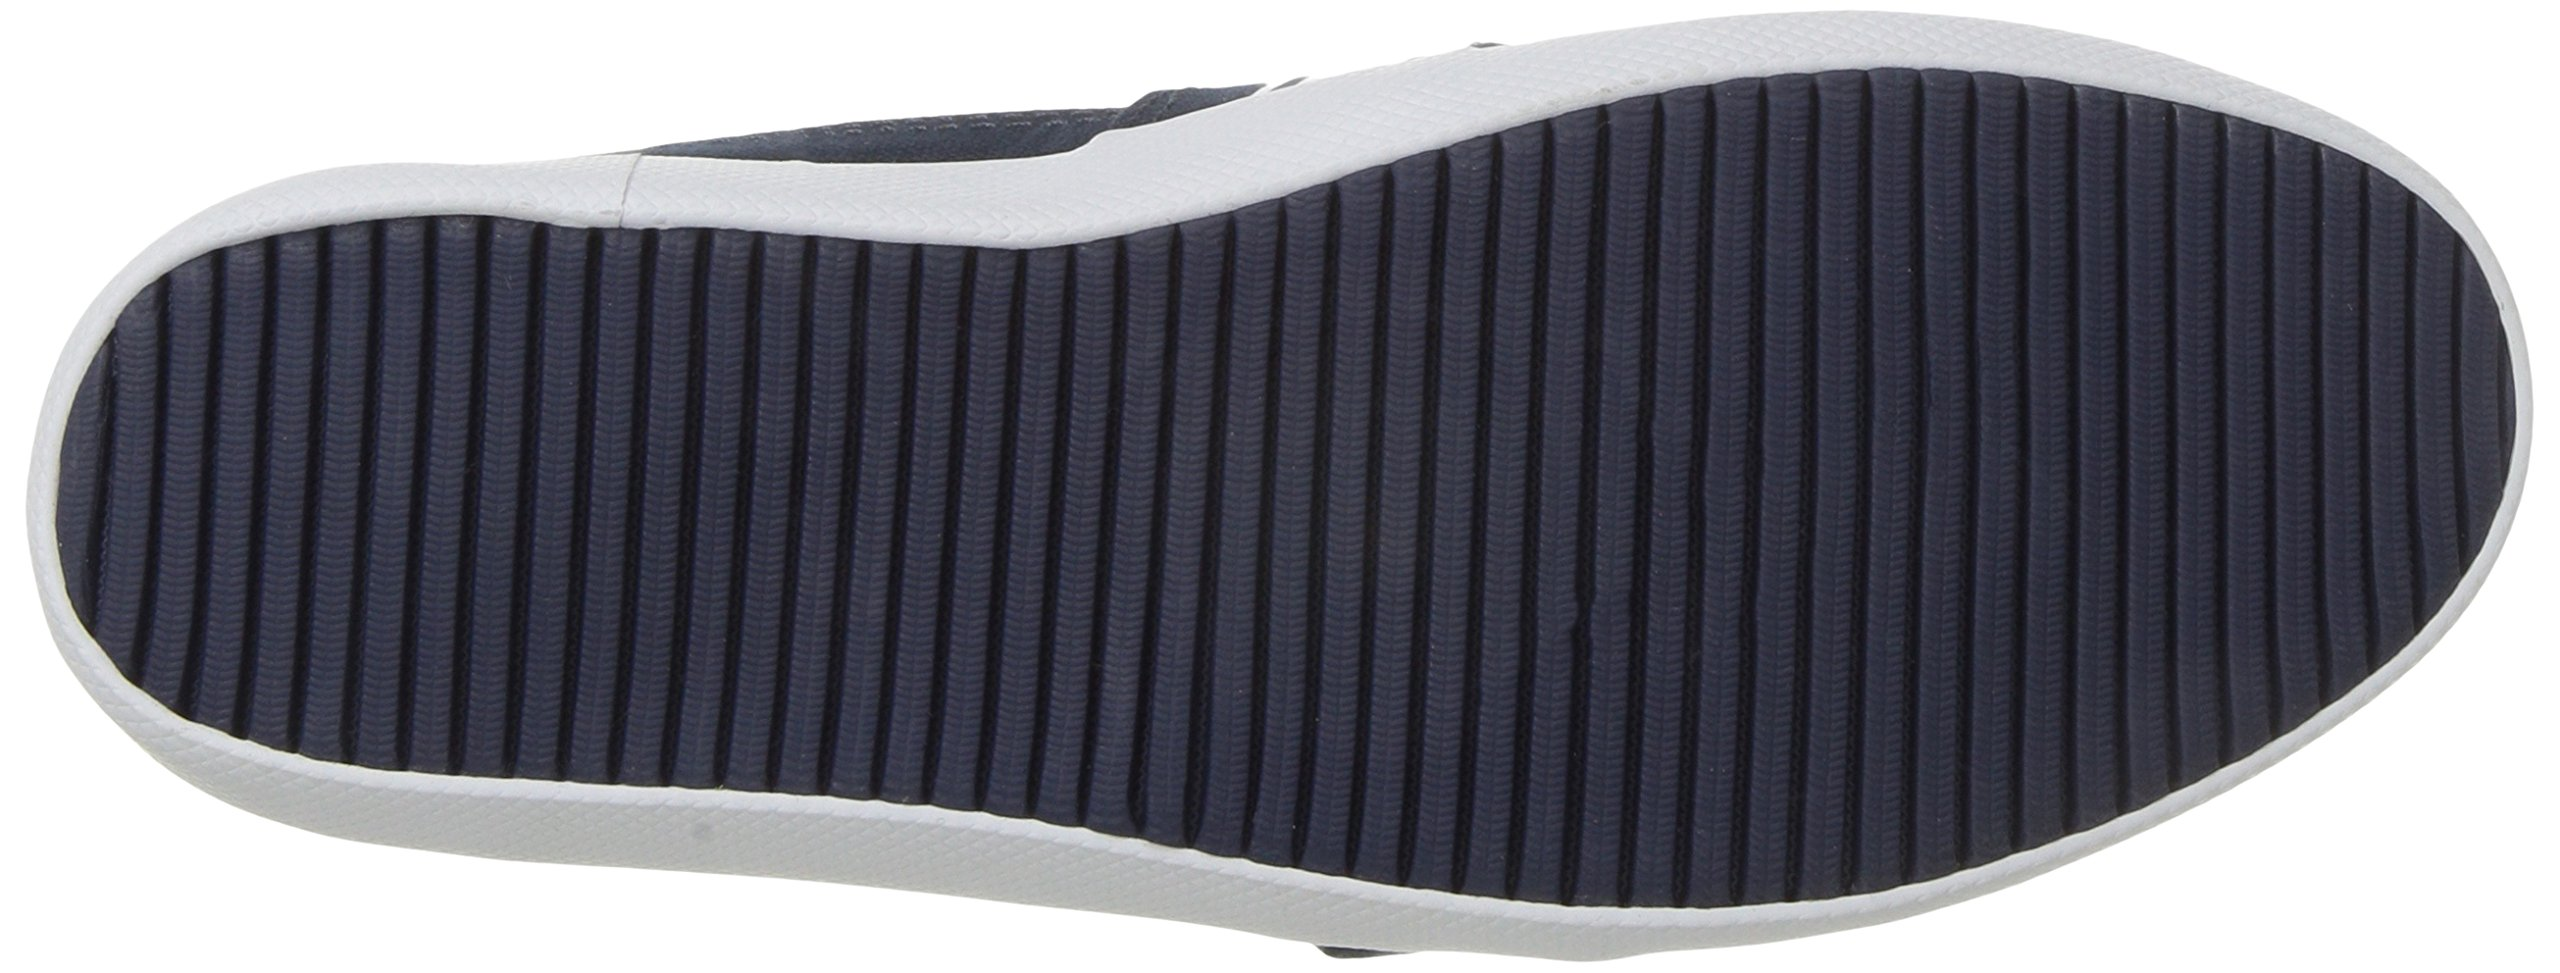 Lacoste Kids' Marice Slip-ONS,Navy/White Cotton Canvas,13. M US Little Kid by Lacoste (Image #3)